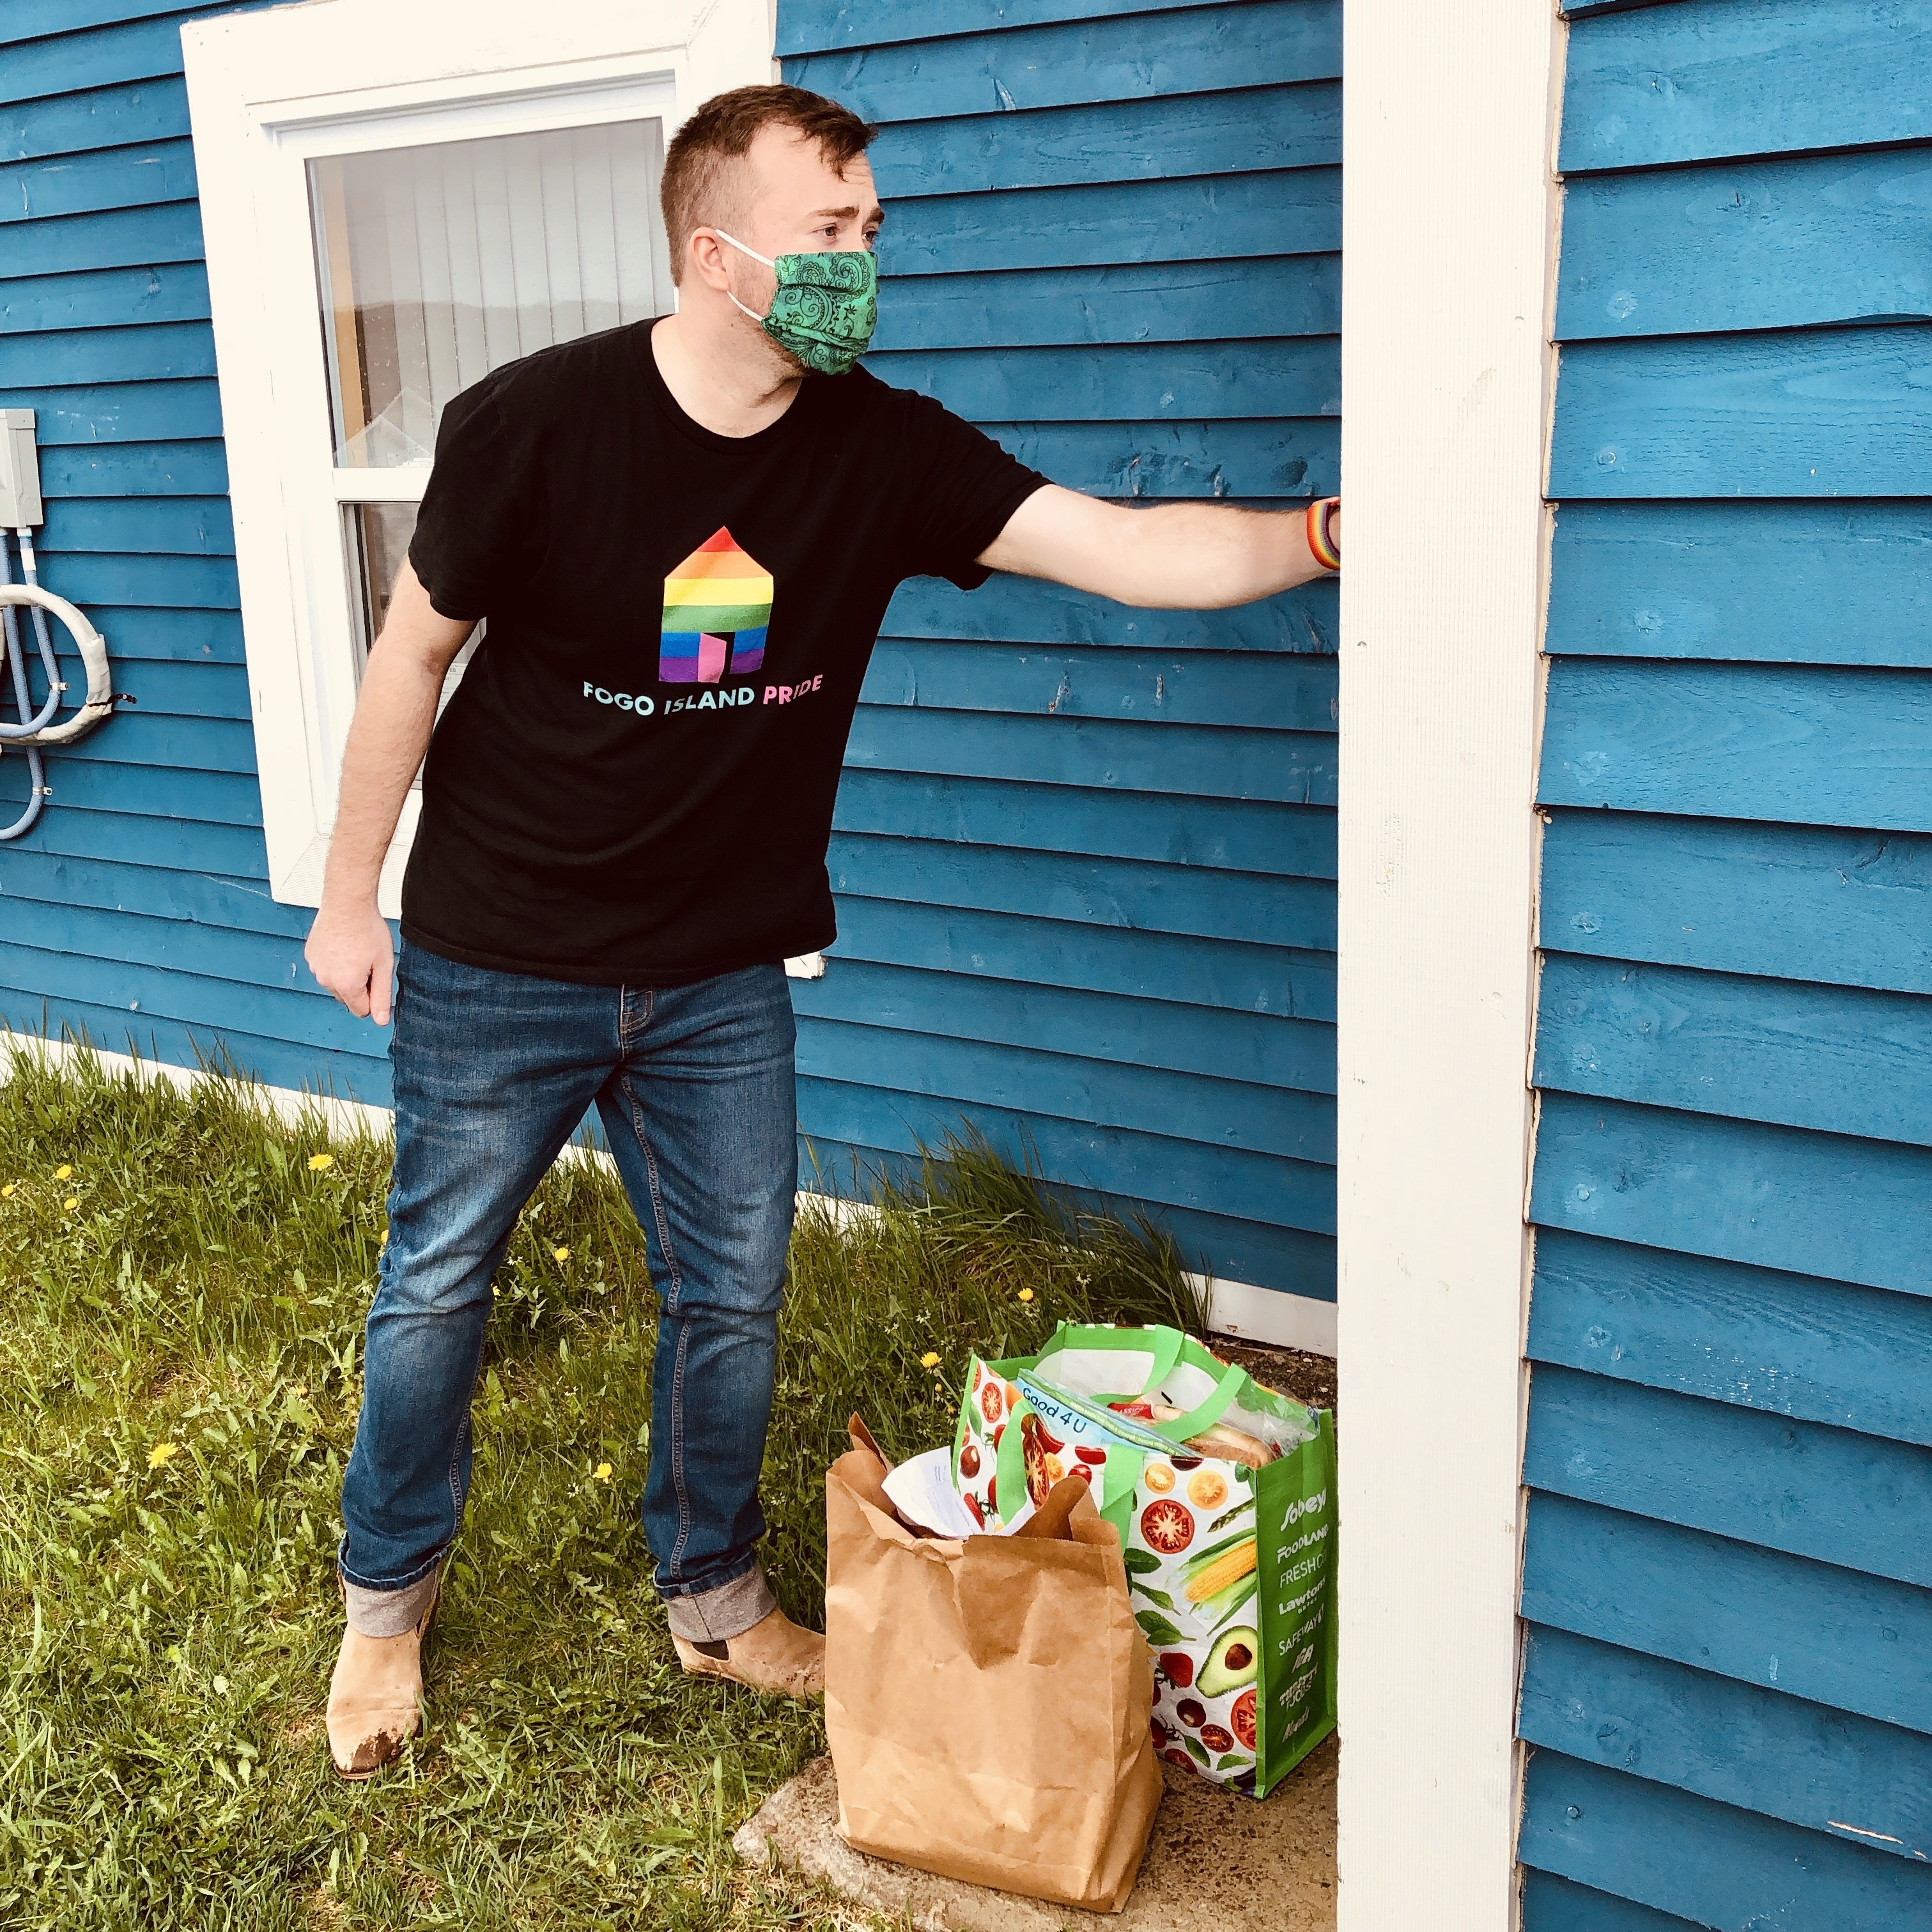 Evan Parsons delivers groceries as part of Fogo Island Pride's outreach project on food insecurity. (Submitted by Evan Parsons)